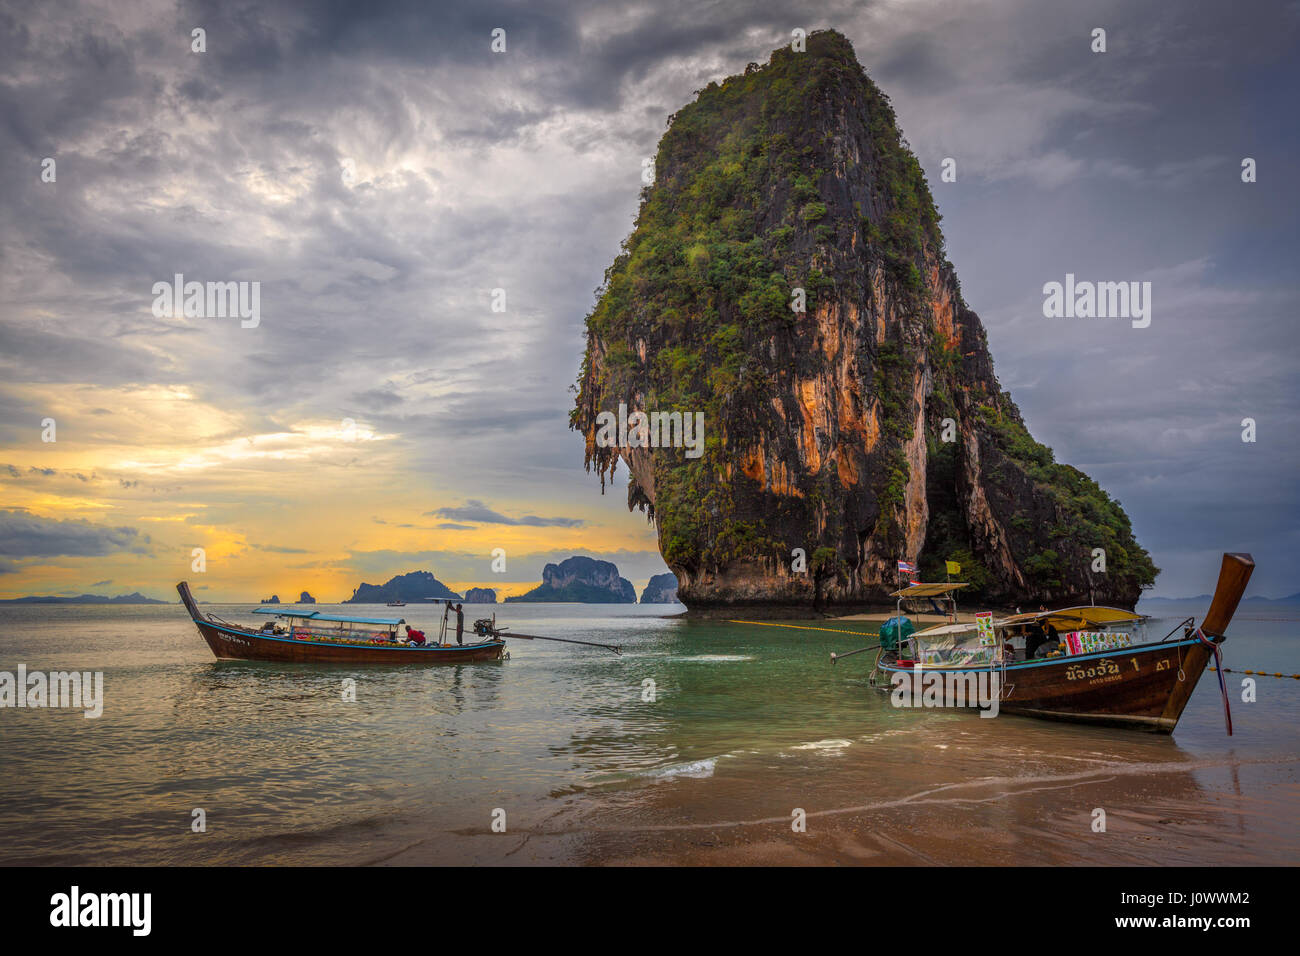 Phra Nang beach, Railay, Krabi province, Thailand: longtail food vendor boats in front of Happy Island - Stock Image